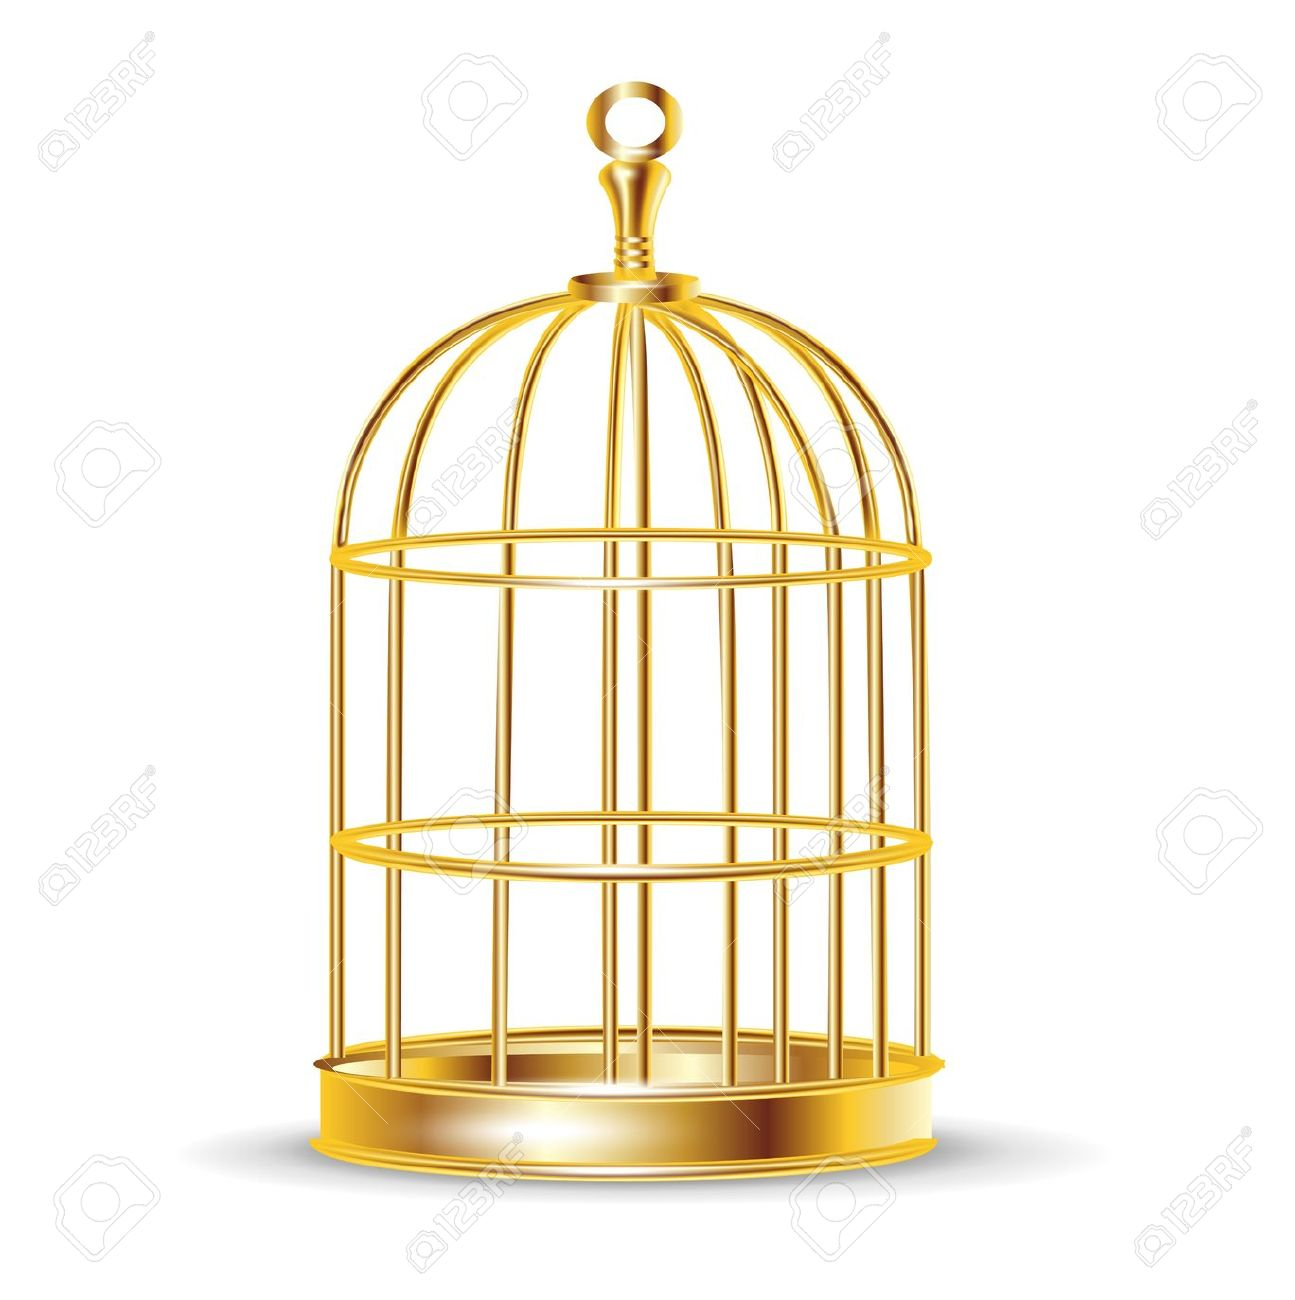 Golden Bird Cage Isolated On White Royalty Free Cliparts, Vectors.